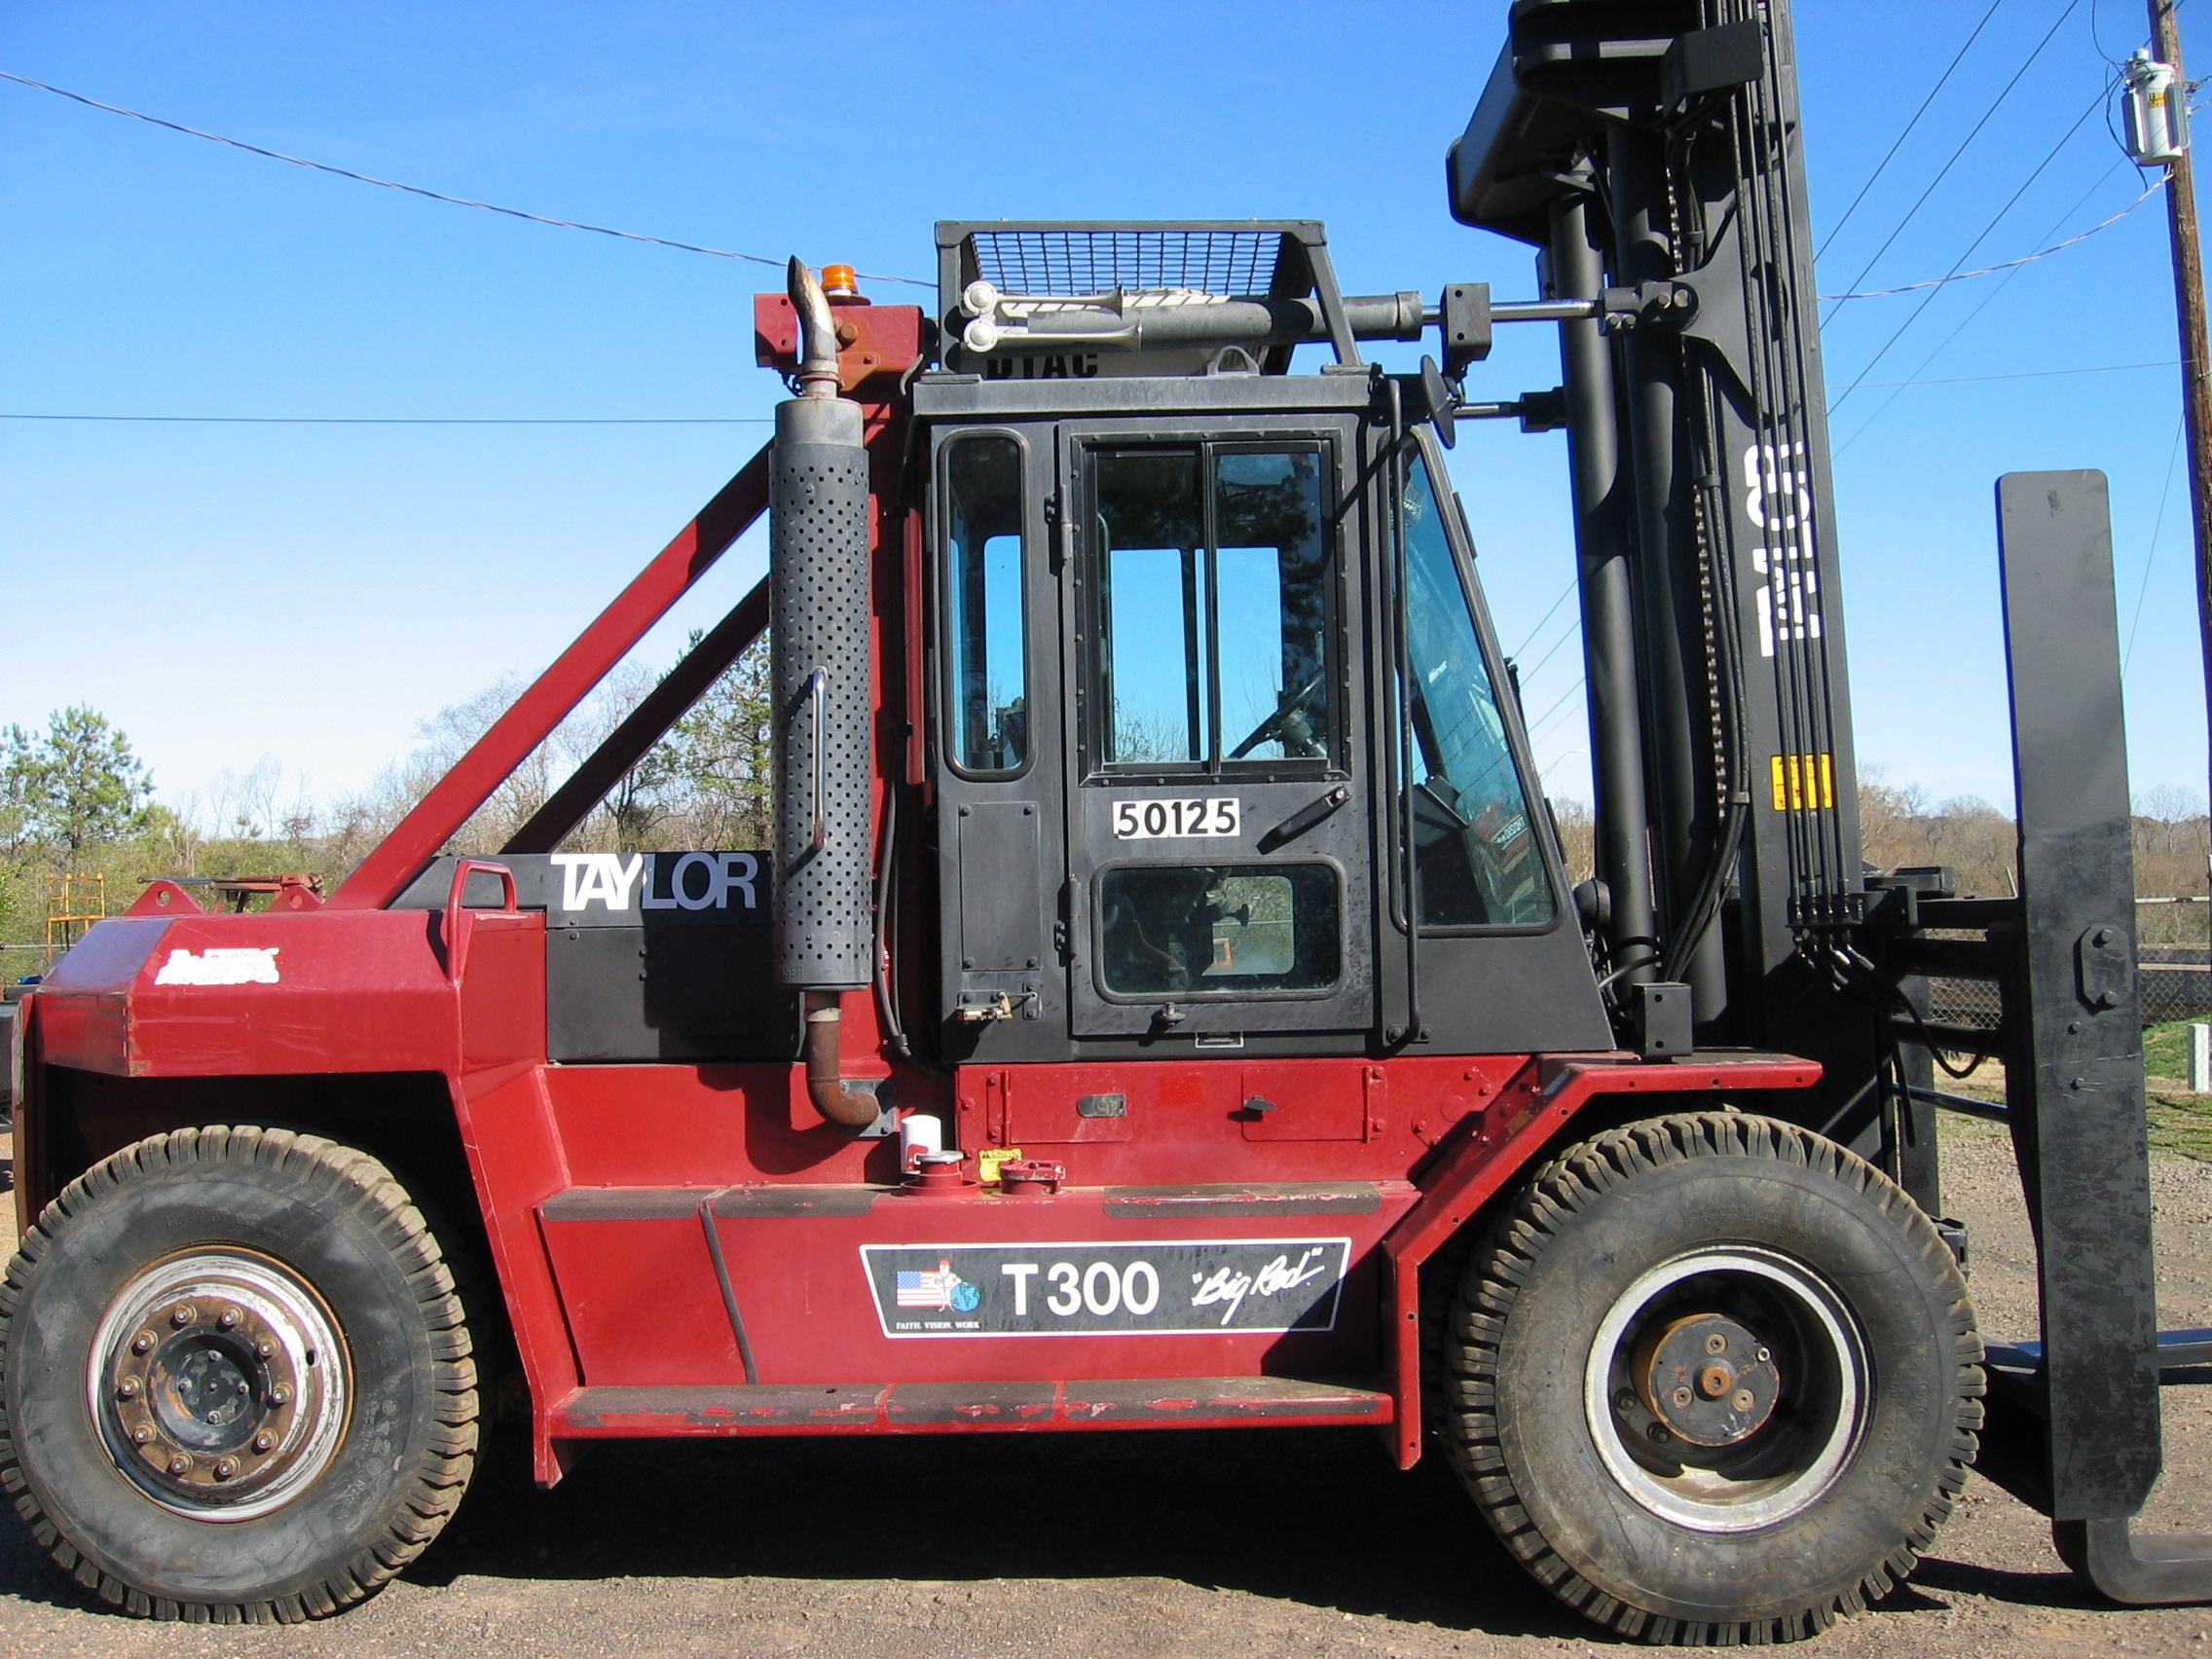 Home | CANTY FORKLIFT, INC  - Serving the Material Handling